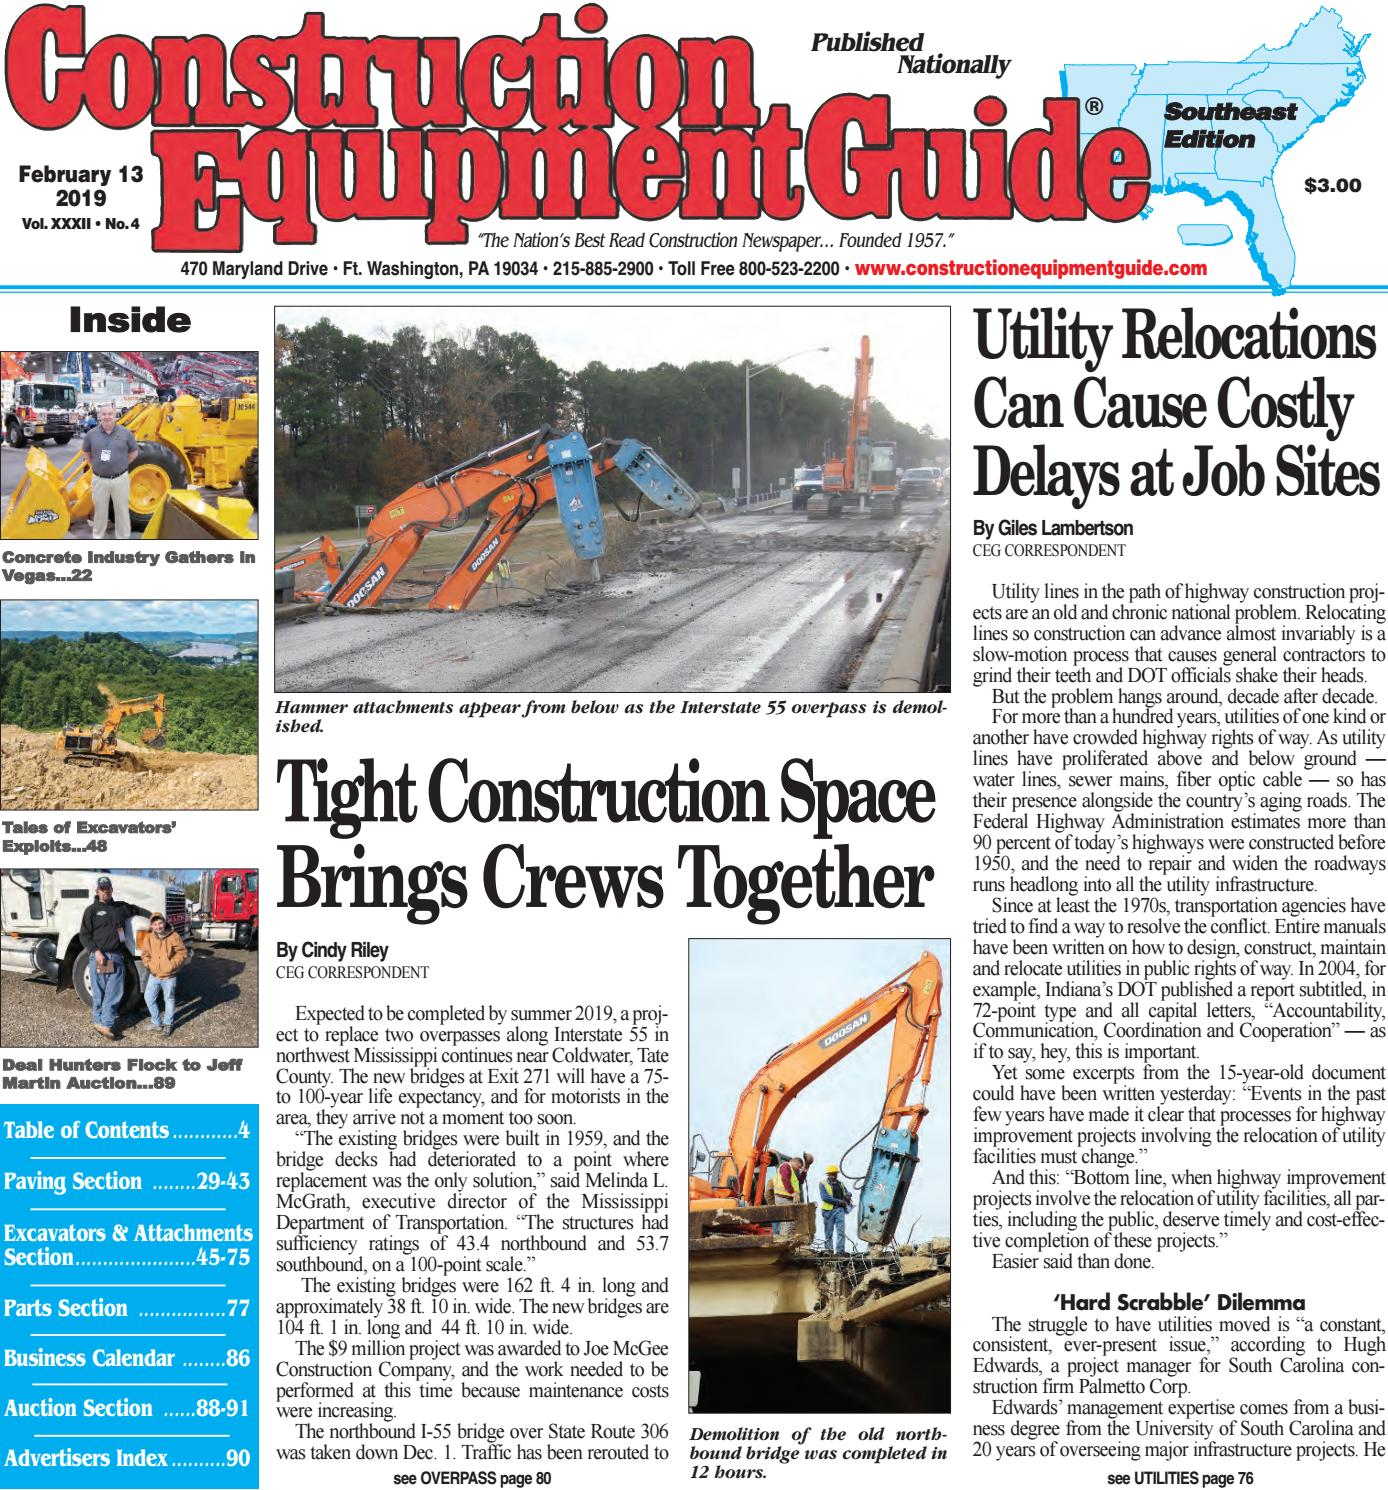 Southeast 4 February 13, 2019 by Construction Equipment